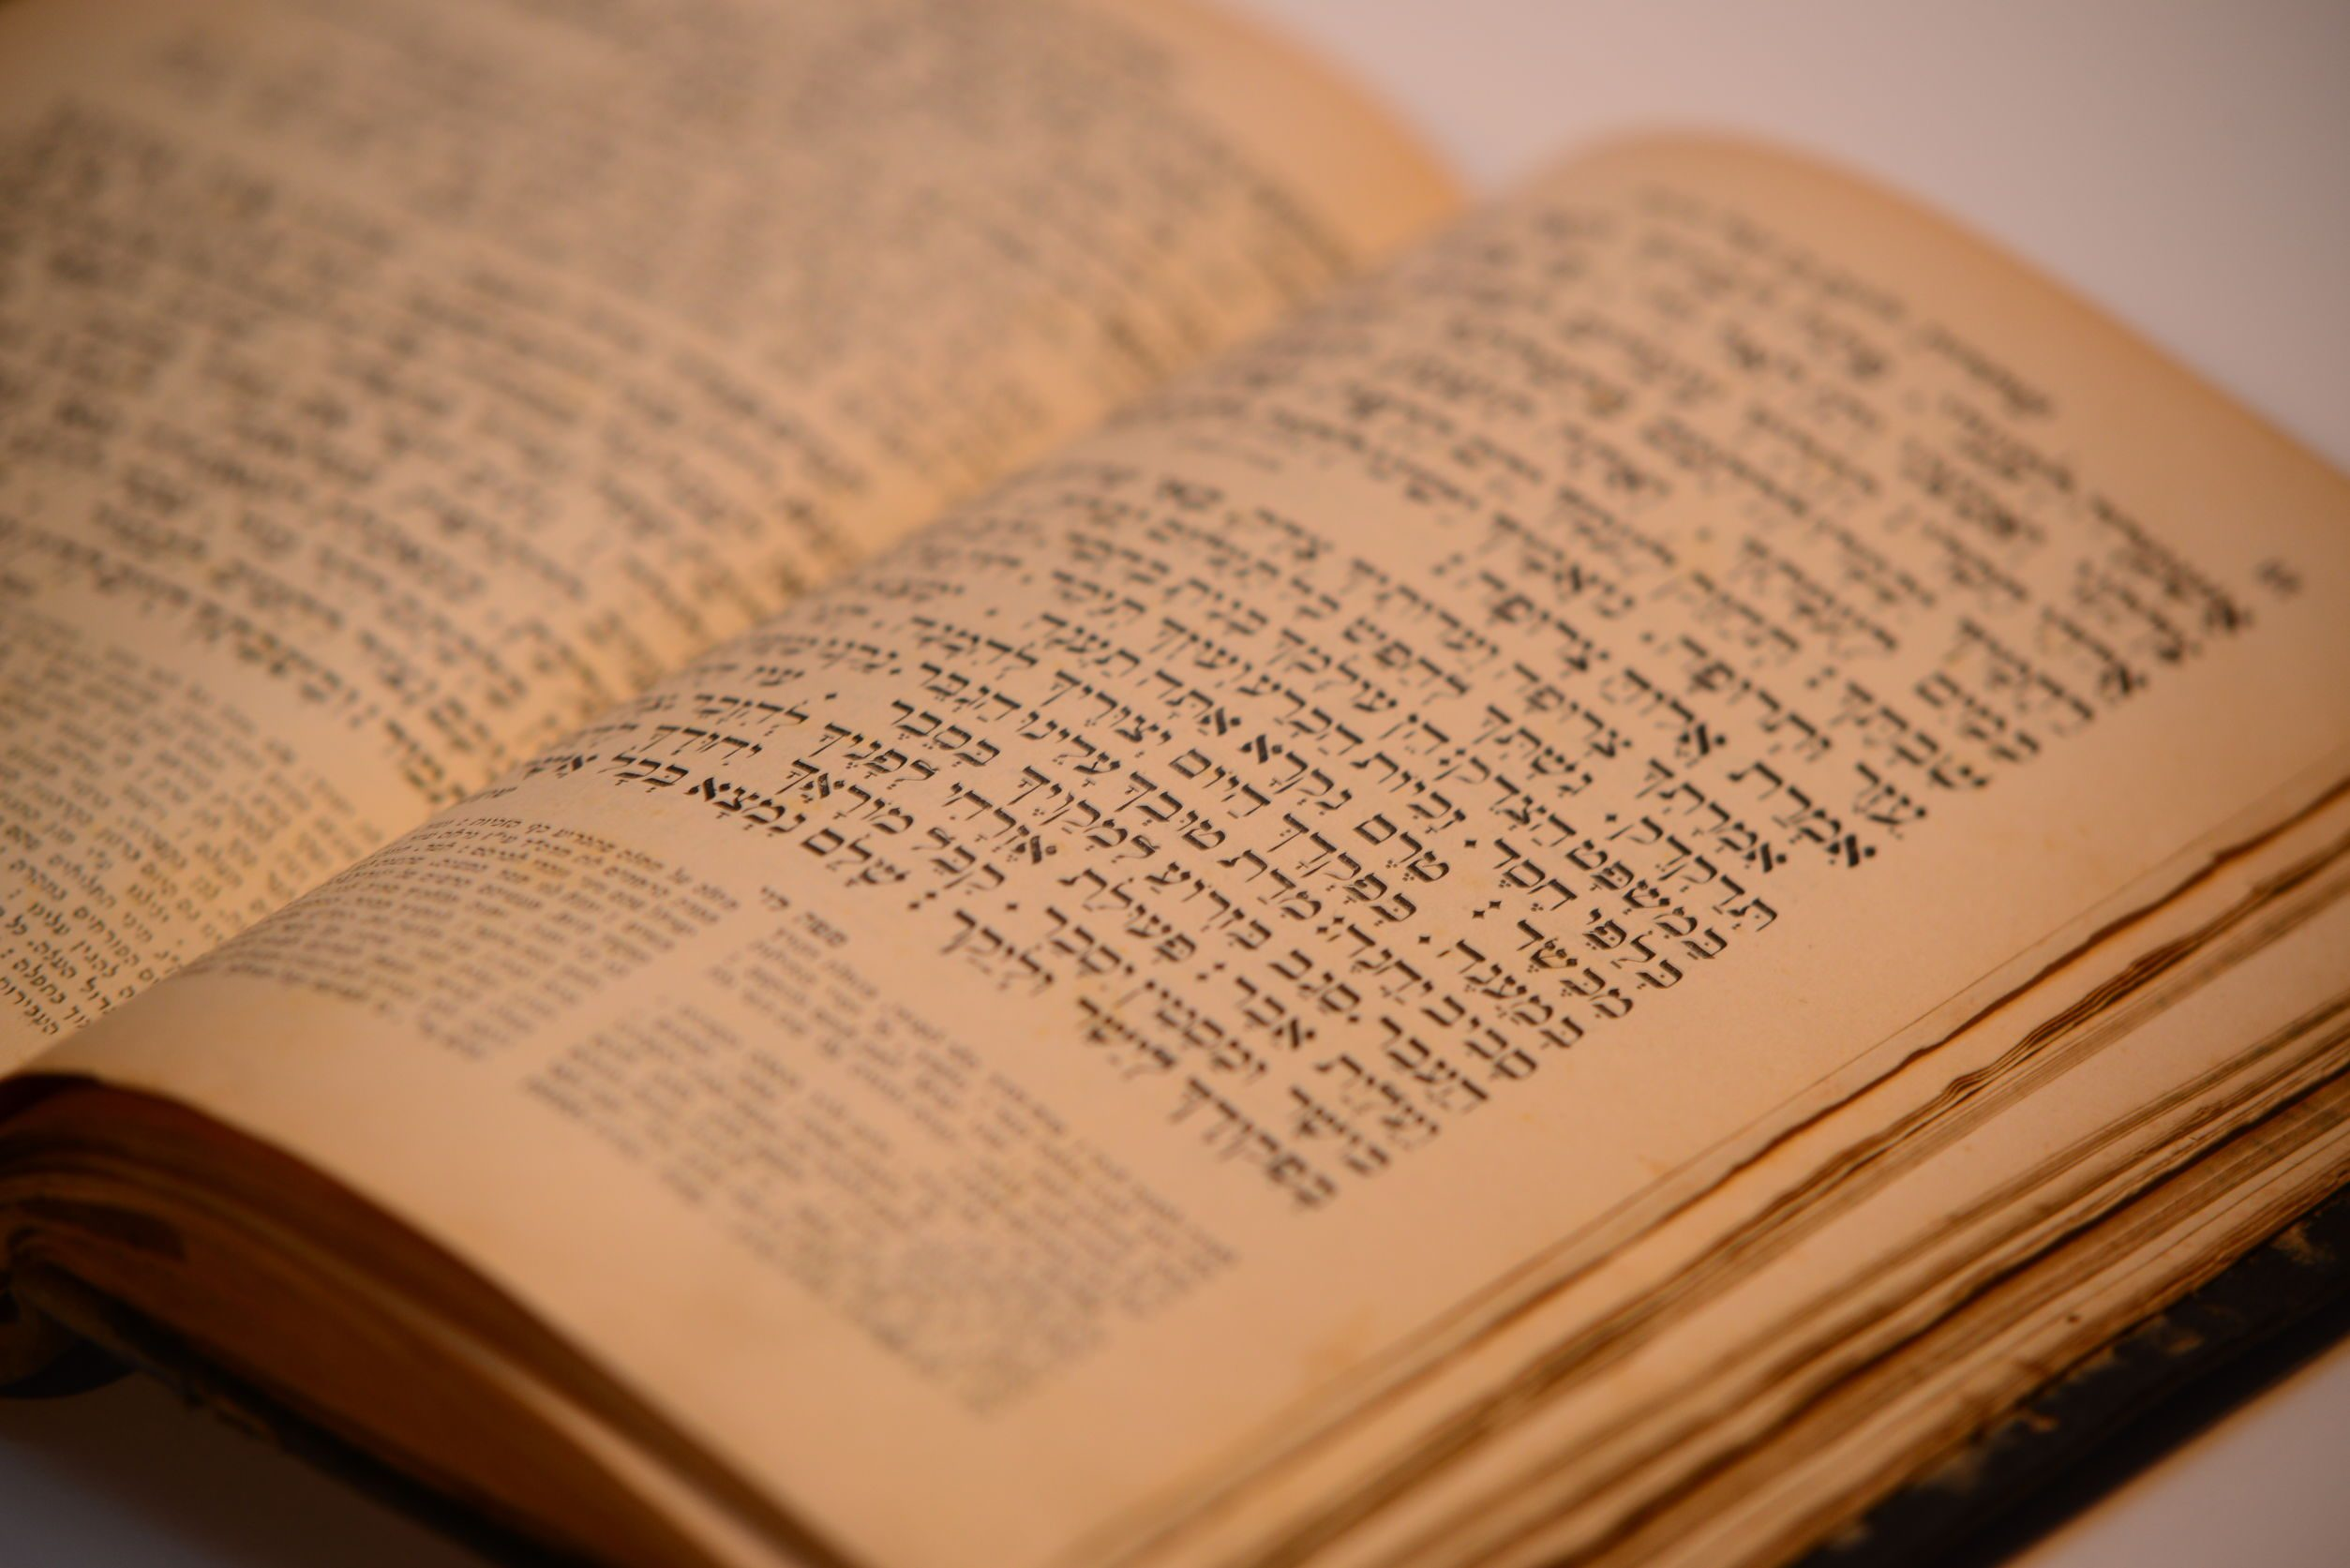 Kiddush & Shalosh Seudos Suspended in Shul for Next 30 Days, But Minyan as Normal